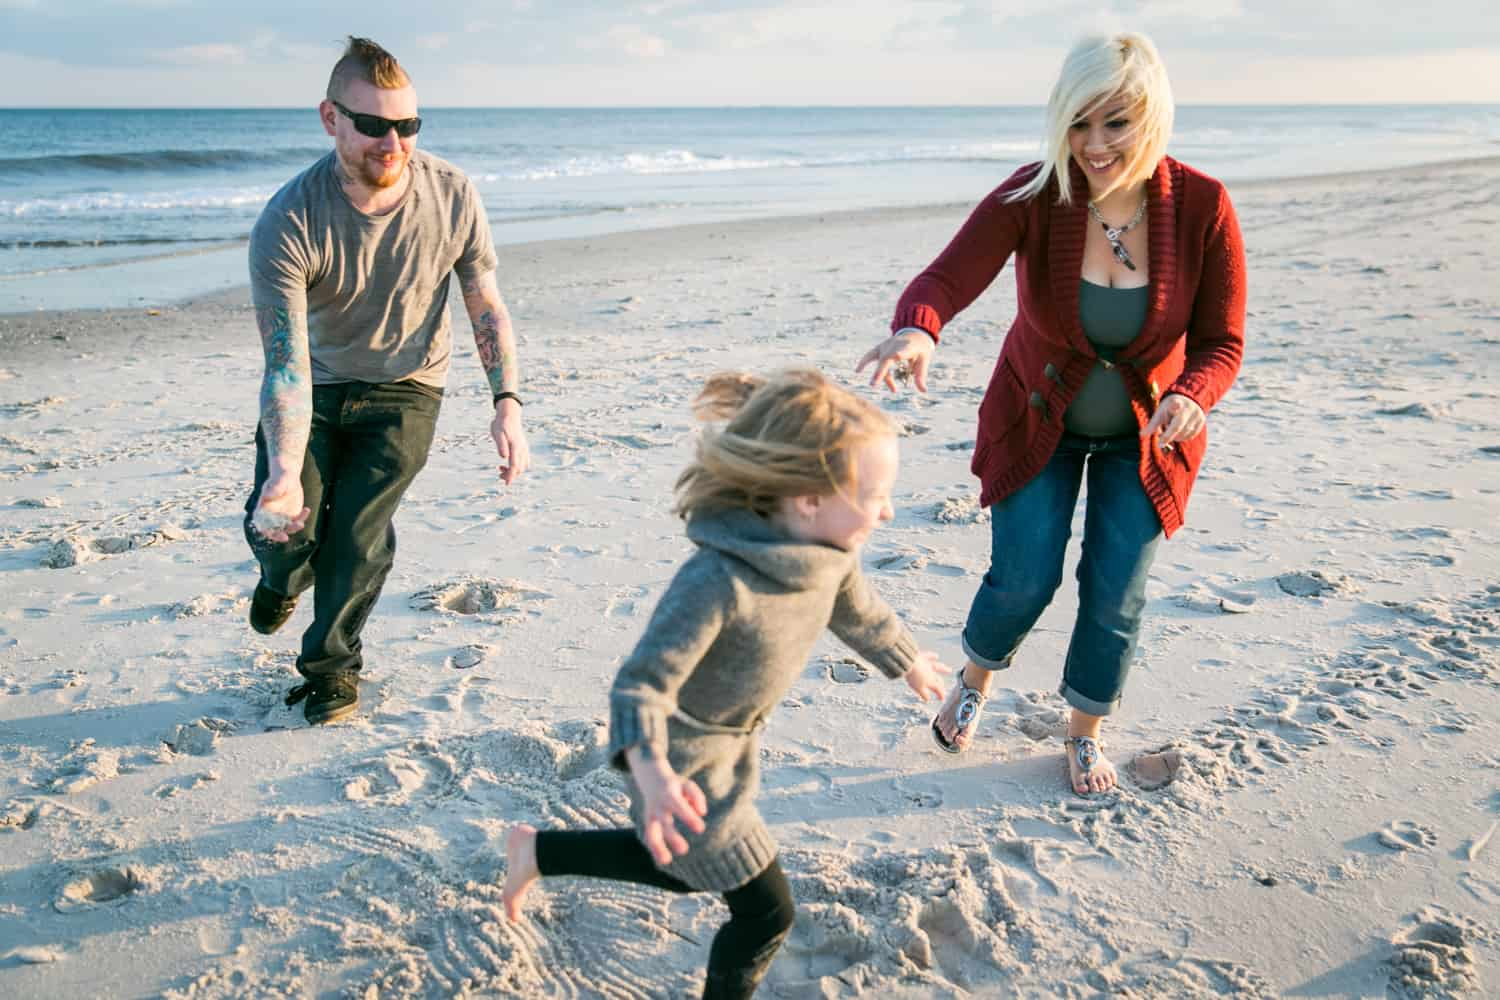 Father and mother chasing little girl on beach